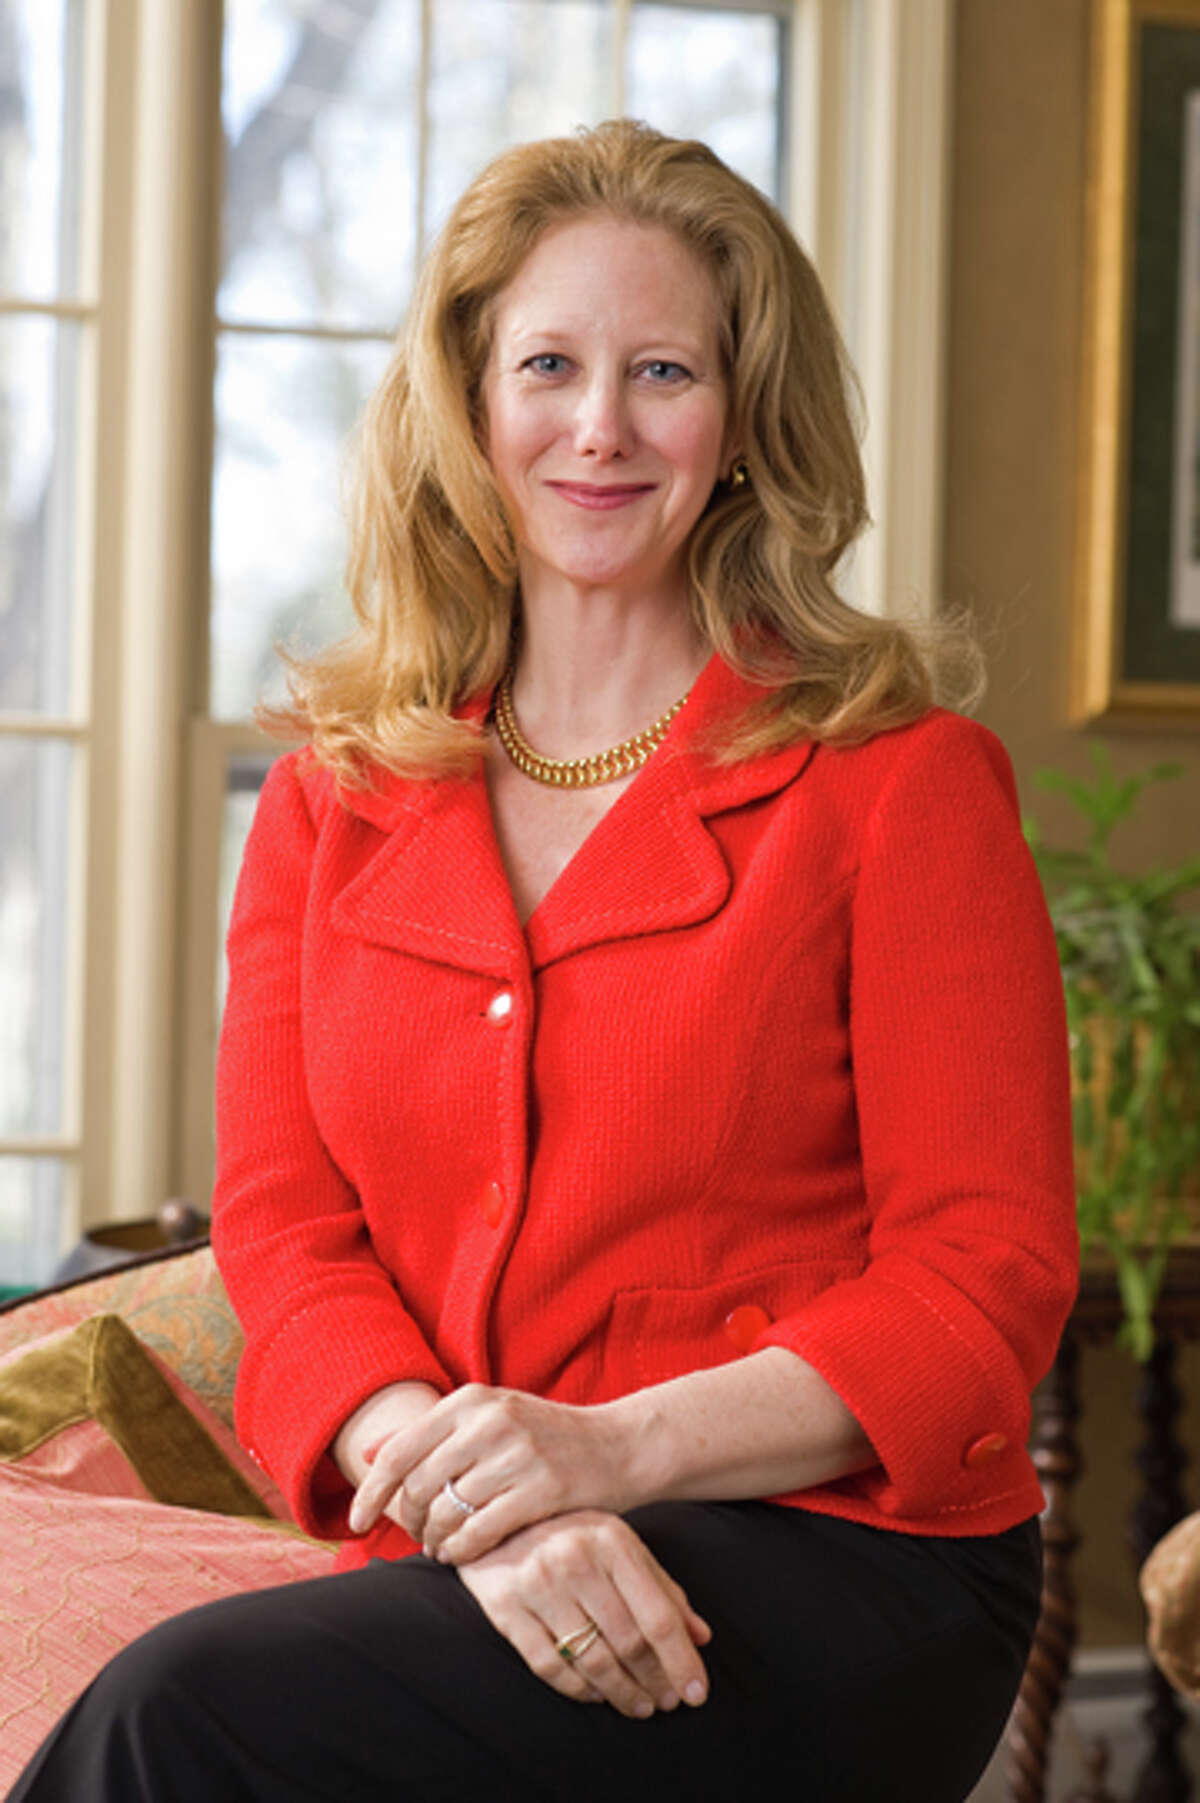 Catherine M. Avery, investment adviser and owner of the New Canaan-based Catherine Avery Investment Management LLC, has been invited to speak on the topic of social media at the Schwab IMPACT conference in Washington, D.C., Nov. 10 to 13.